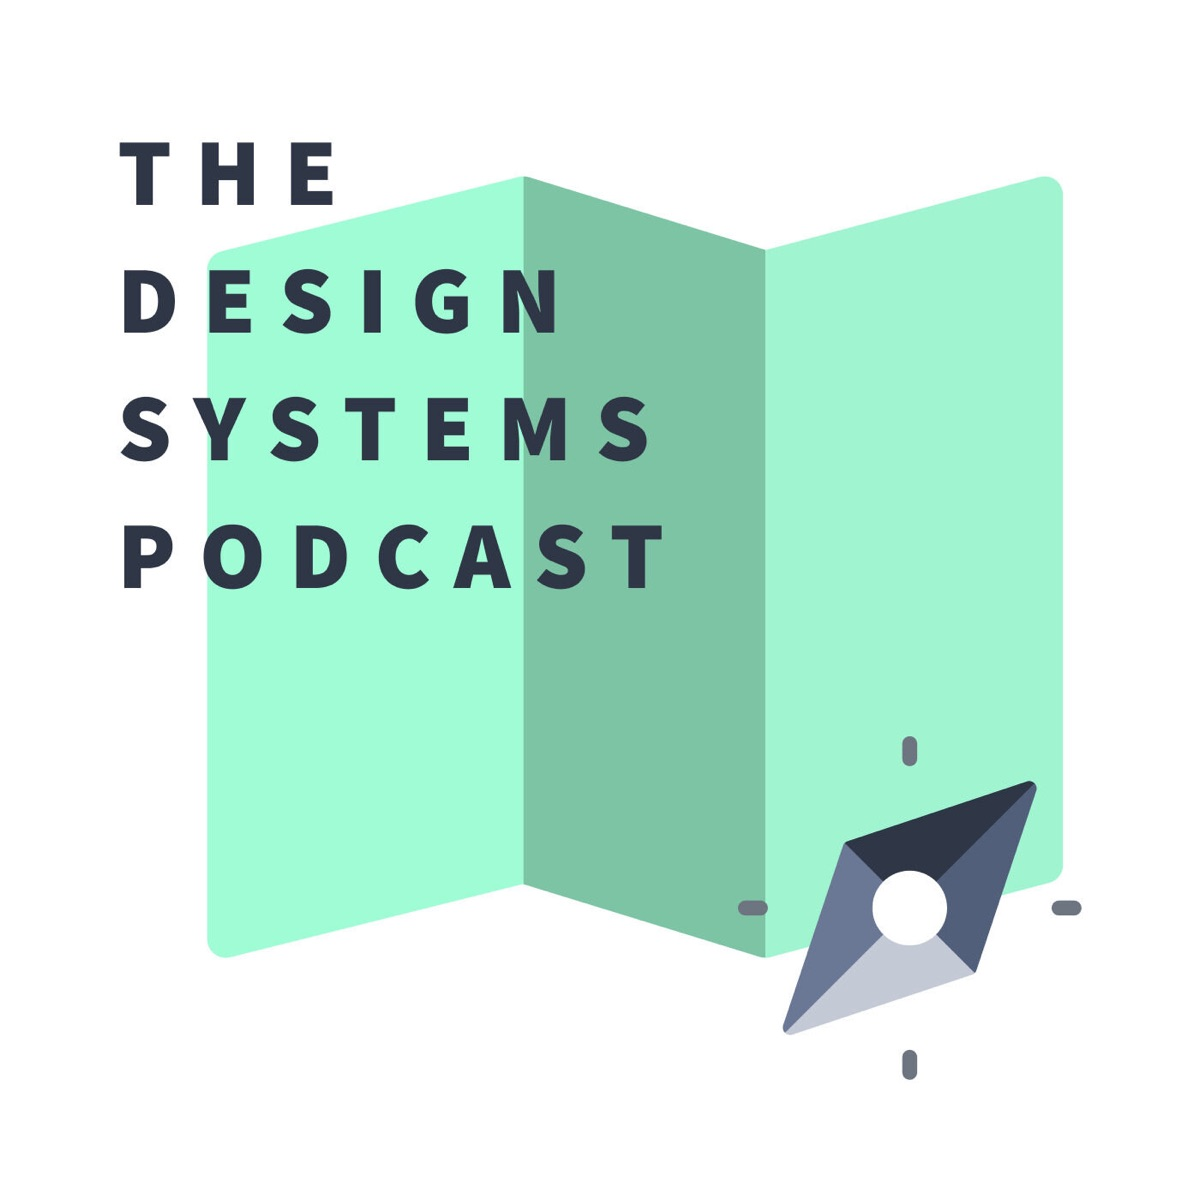 Design Systems Podcast Podcast Podtail